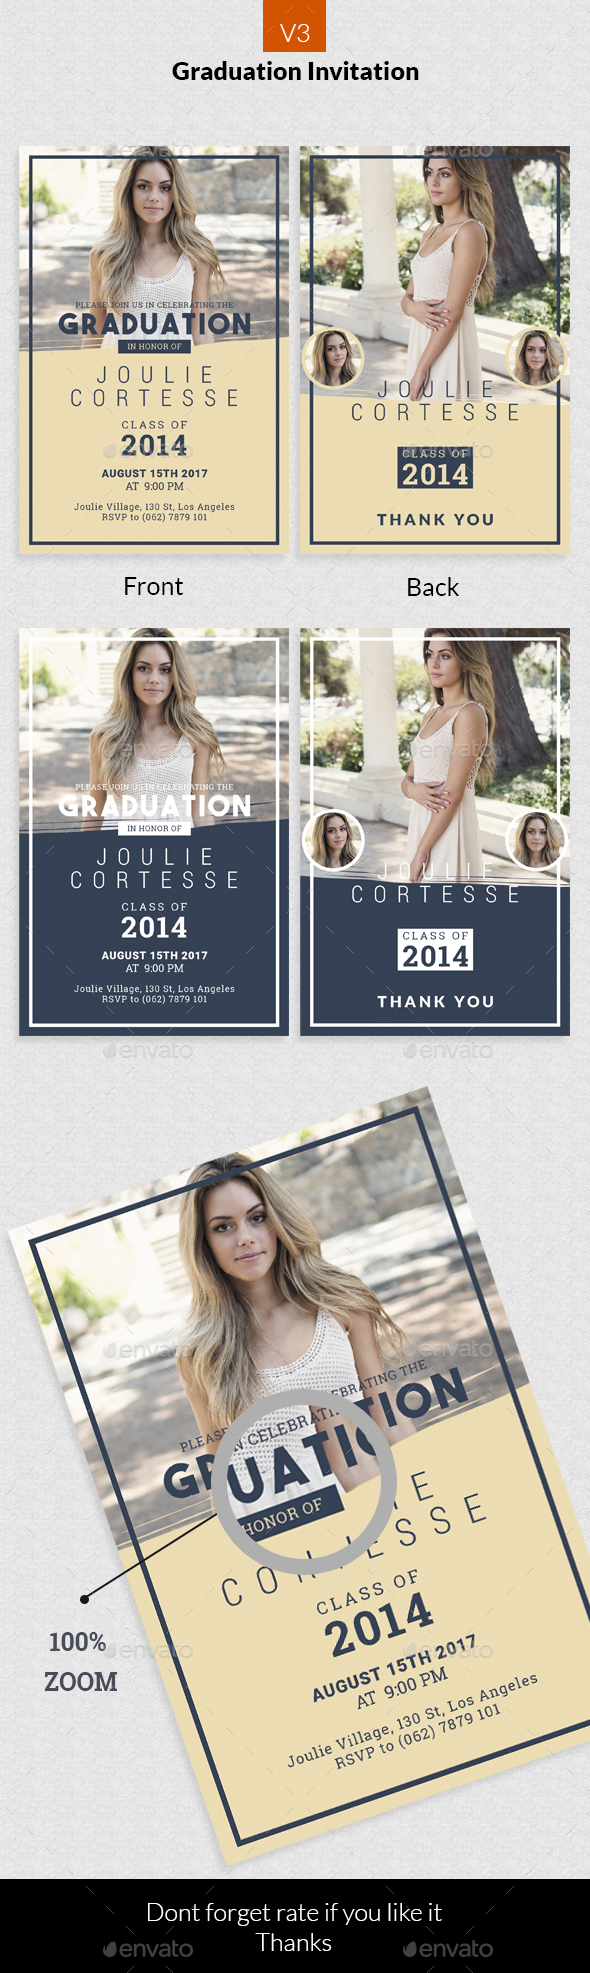 Graduation Invitation v3 - Invitations Cards & Invites